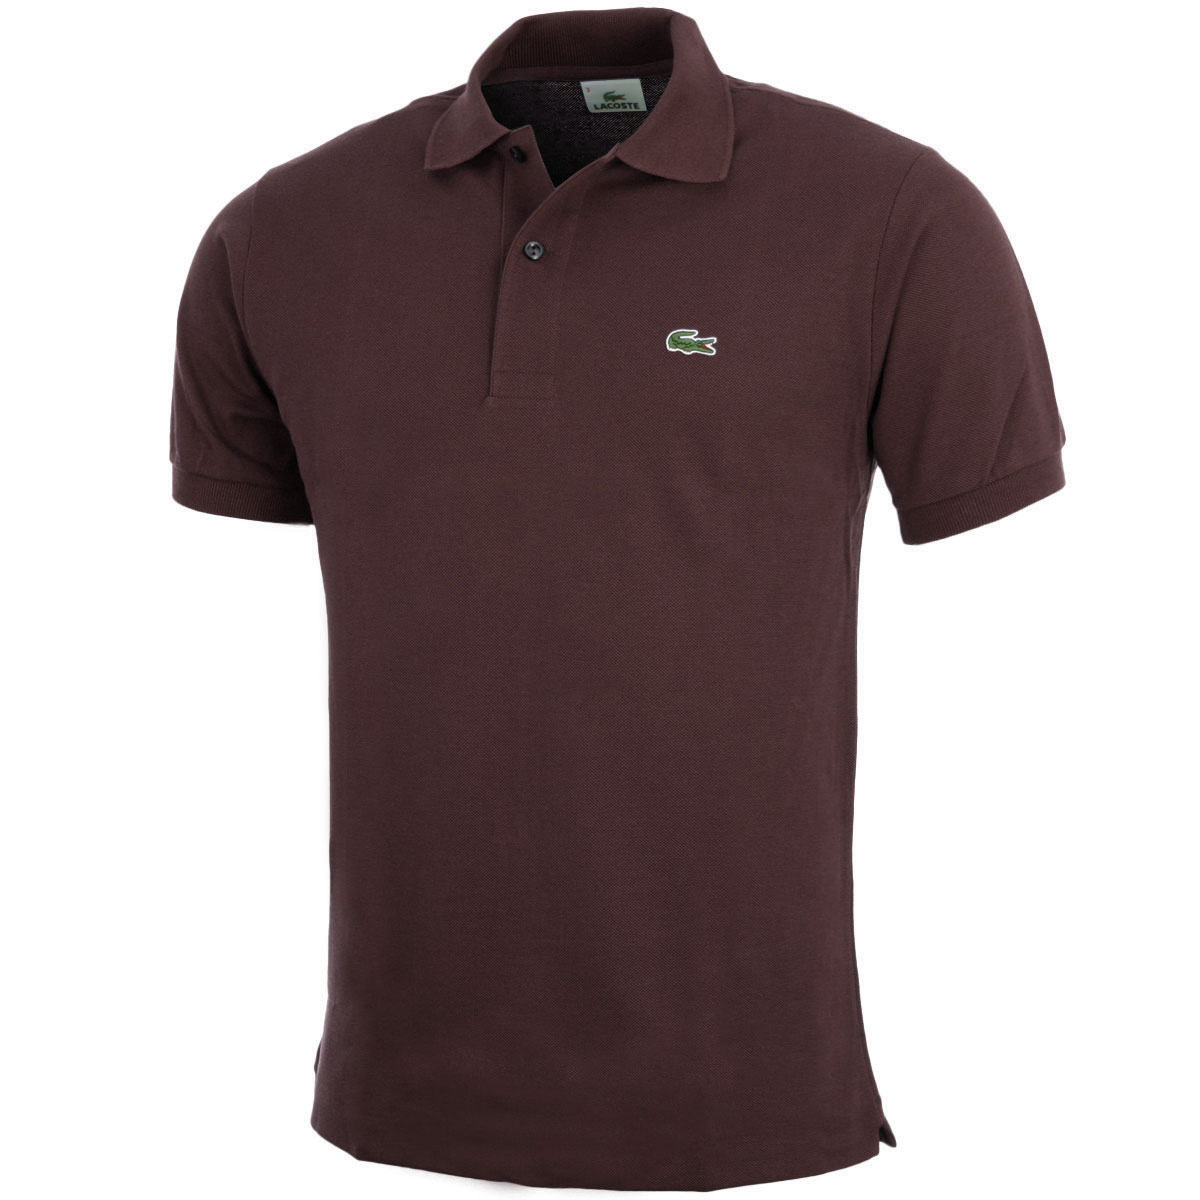 Lacoste-Mens-Classic-Cotton-L1212-Short-Sleeve-Polo-Shirt-26-OFF-RRP thumbnail 37